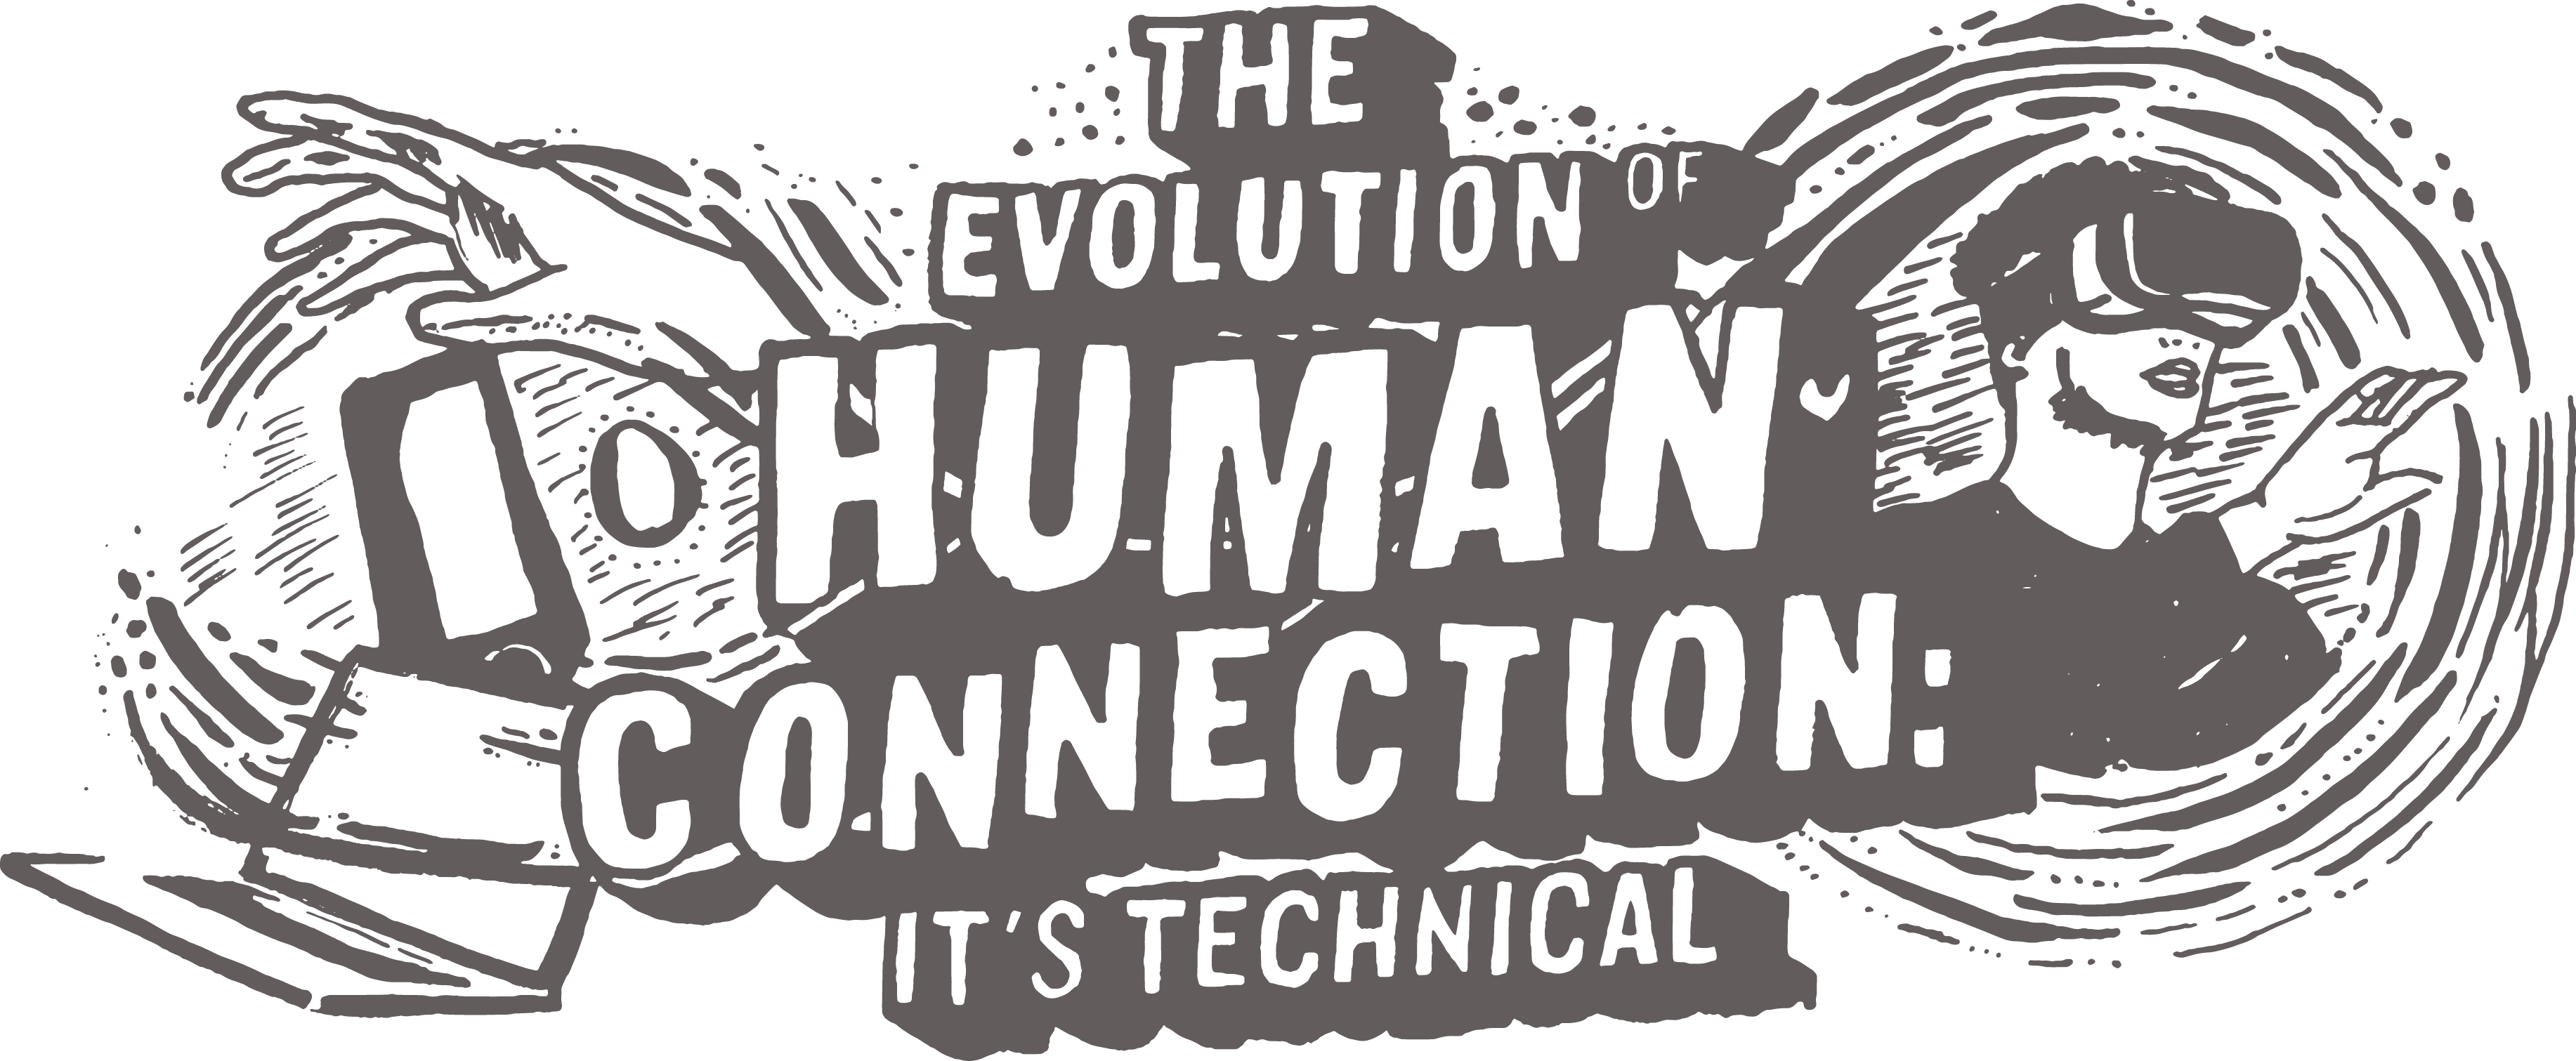 The Evolution of Human Connection: It's Technical